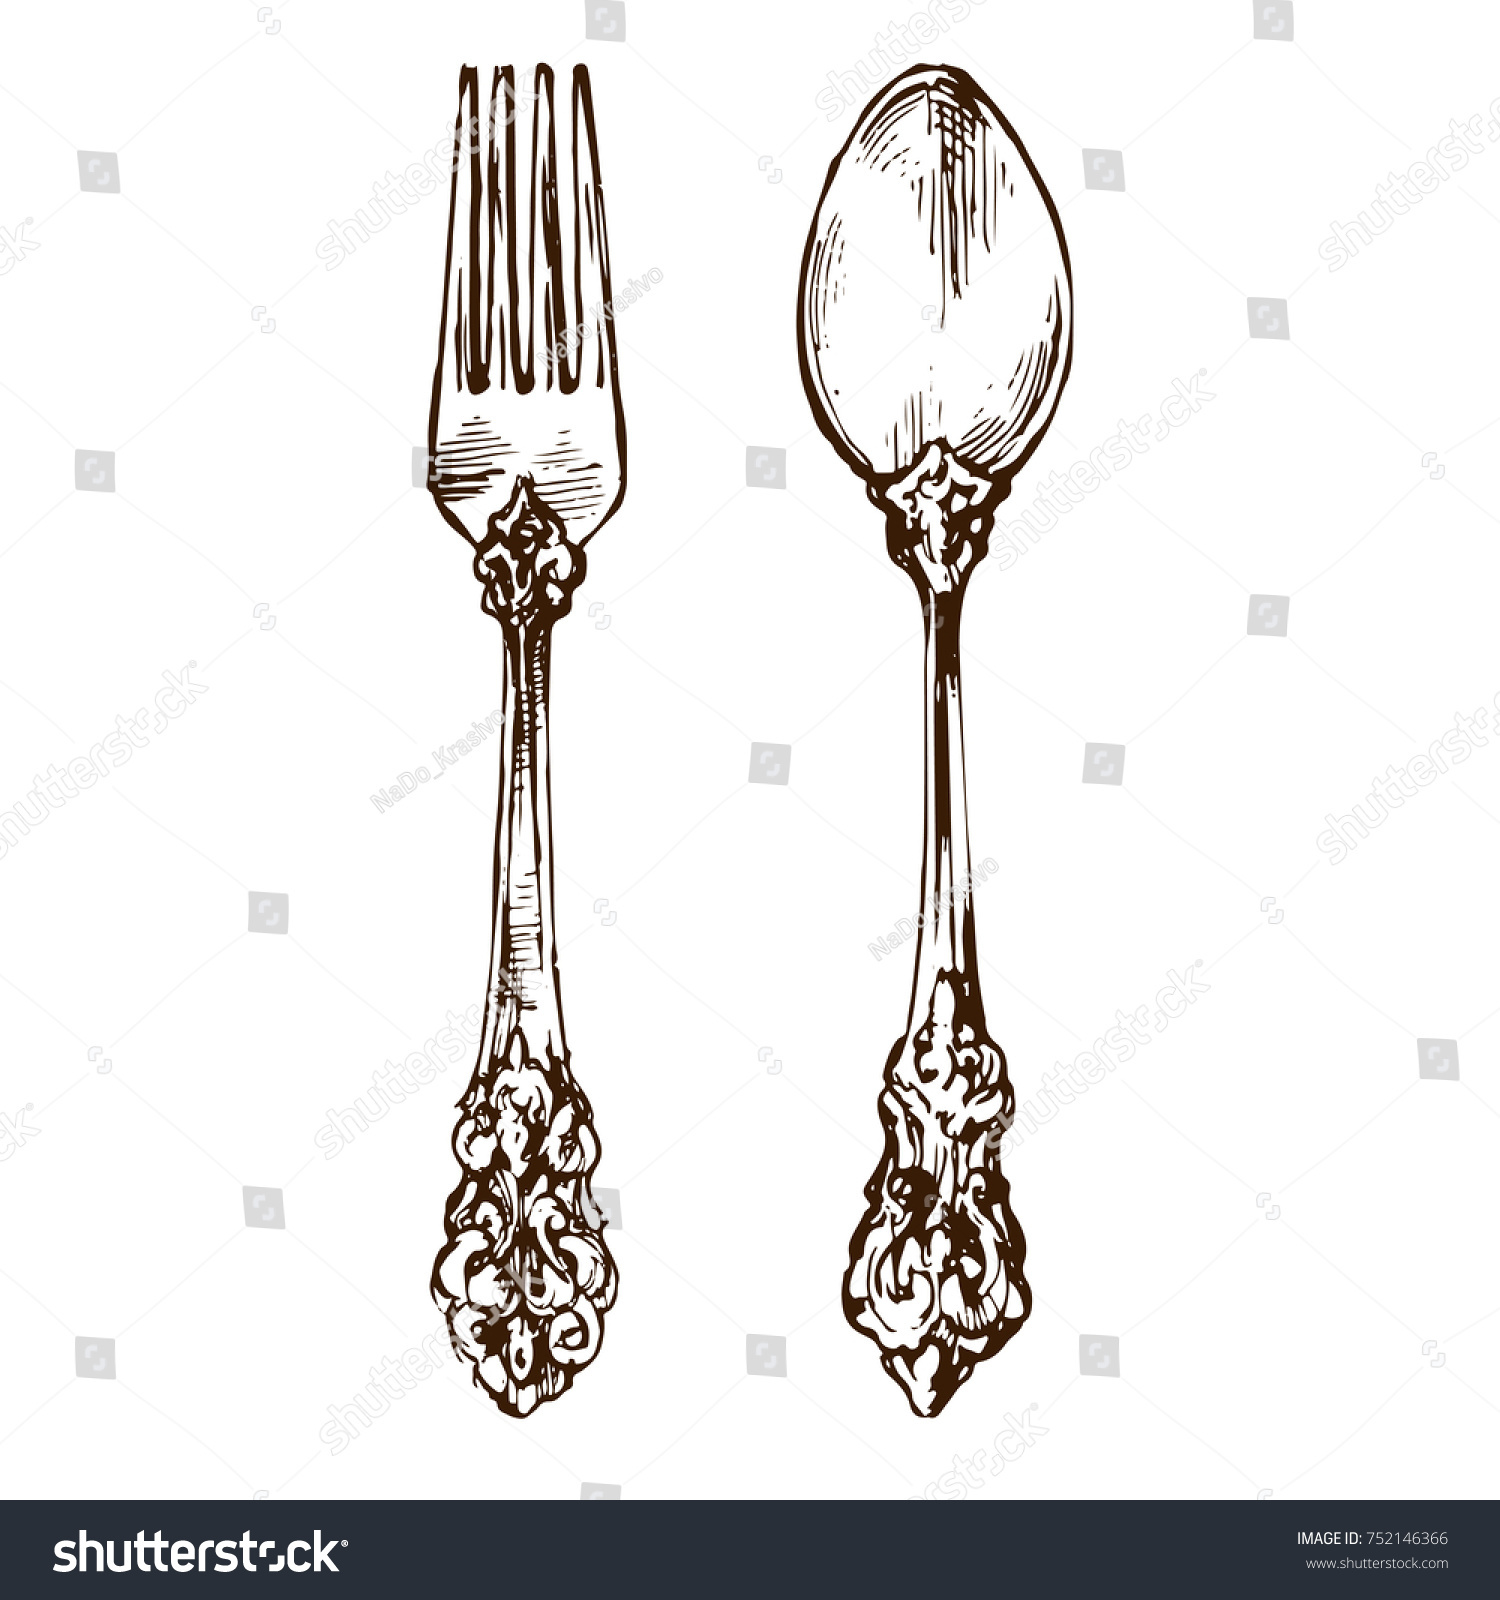 Vintage Silver Knives Forks Spoons Used Stock Photo (Photo, Vector ...